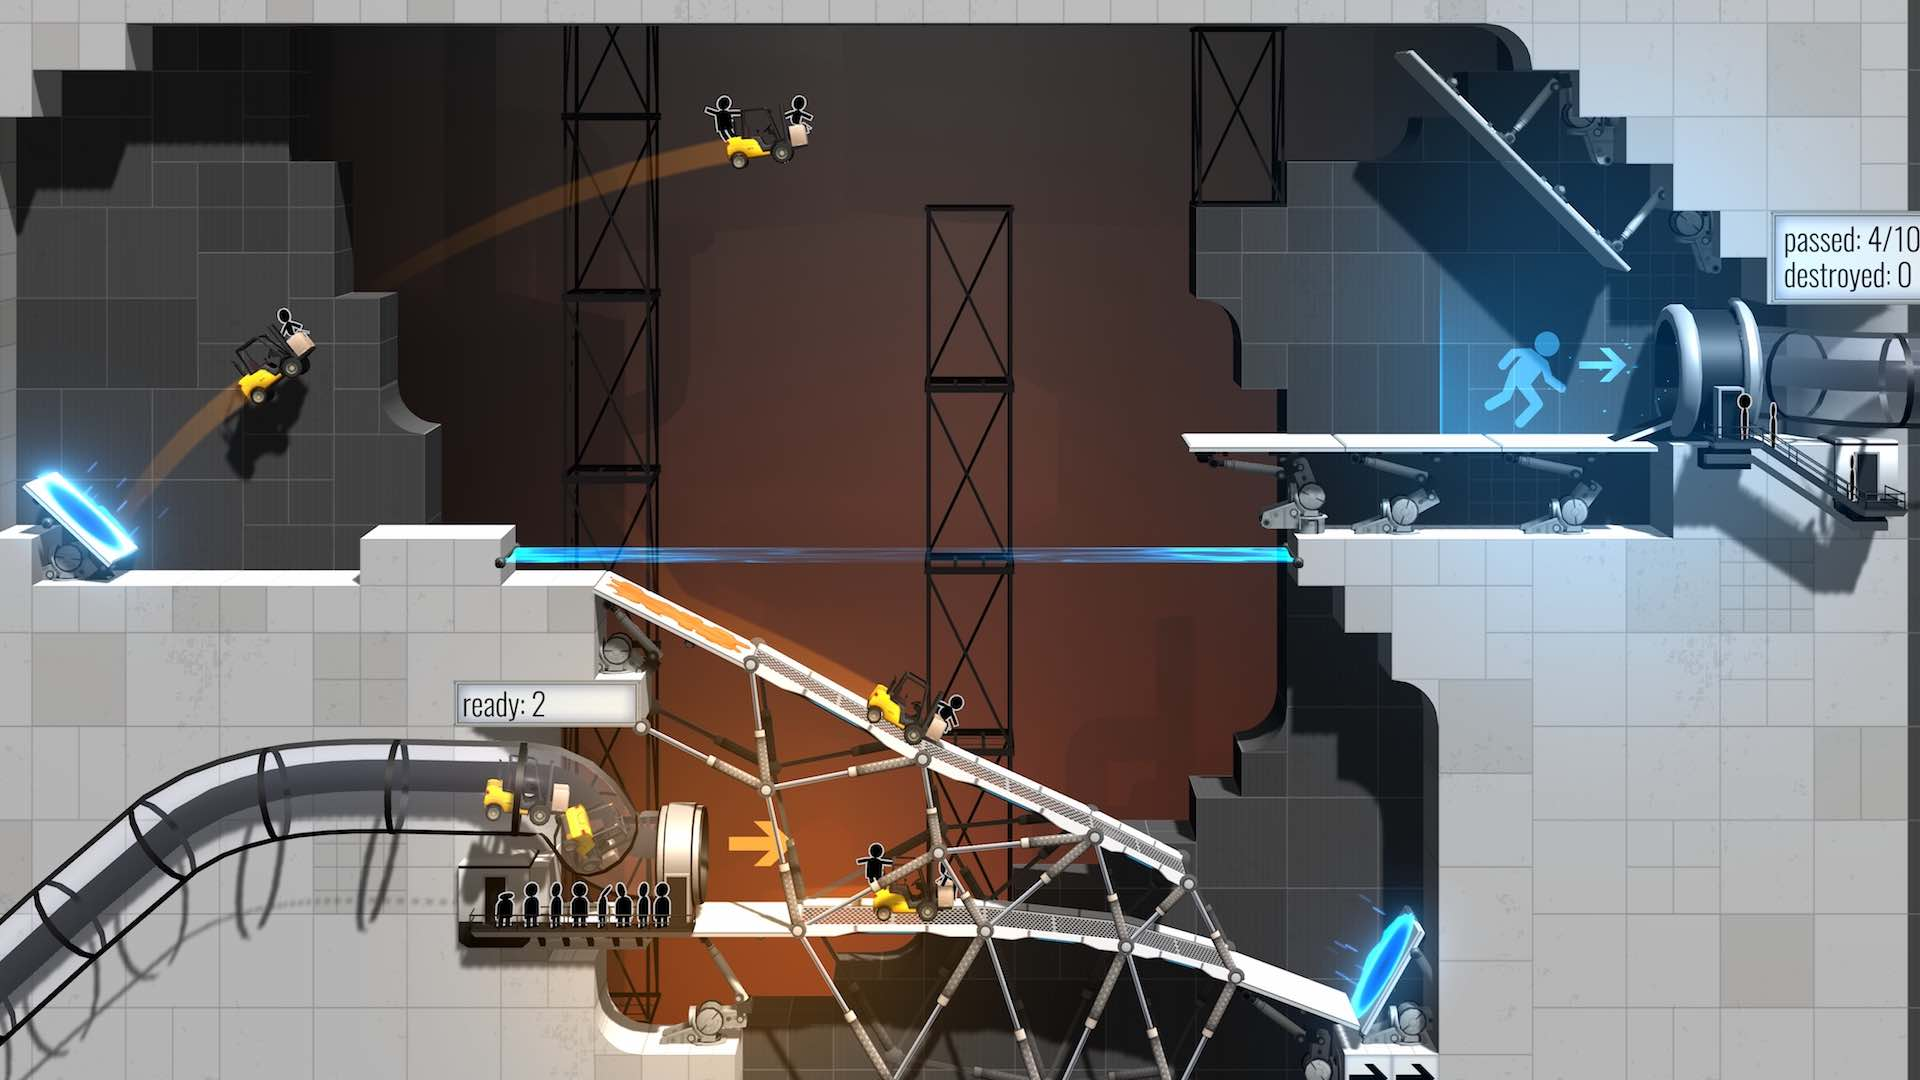 bridge-constructor-portal-screenshot-2